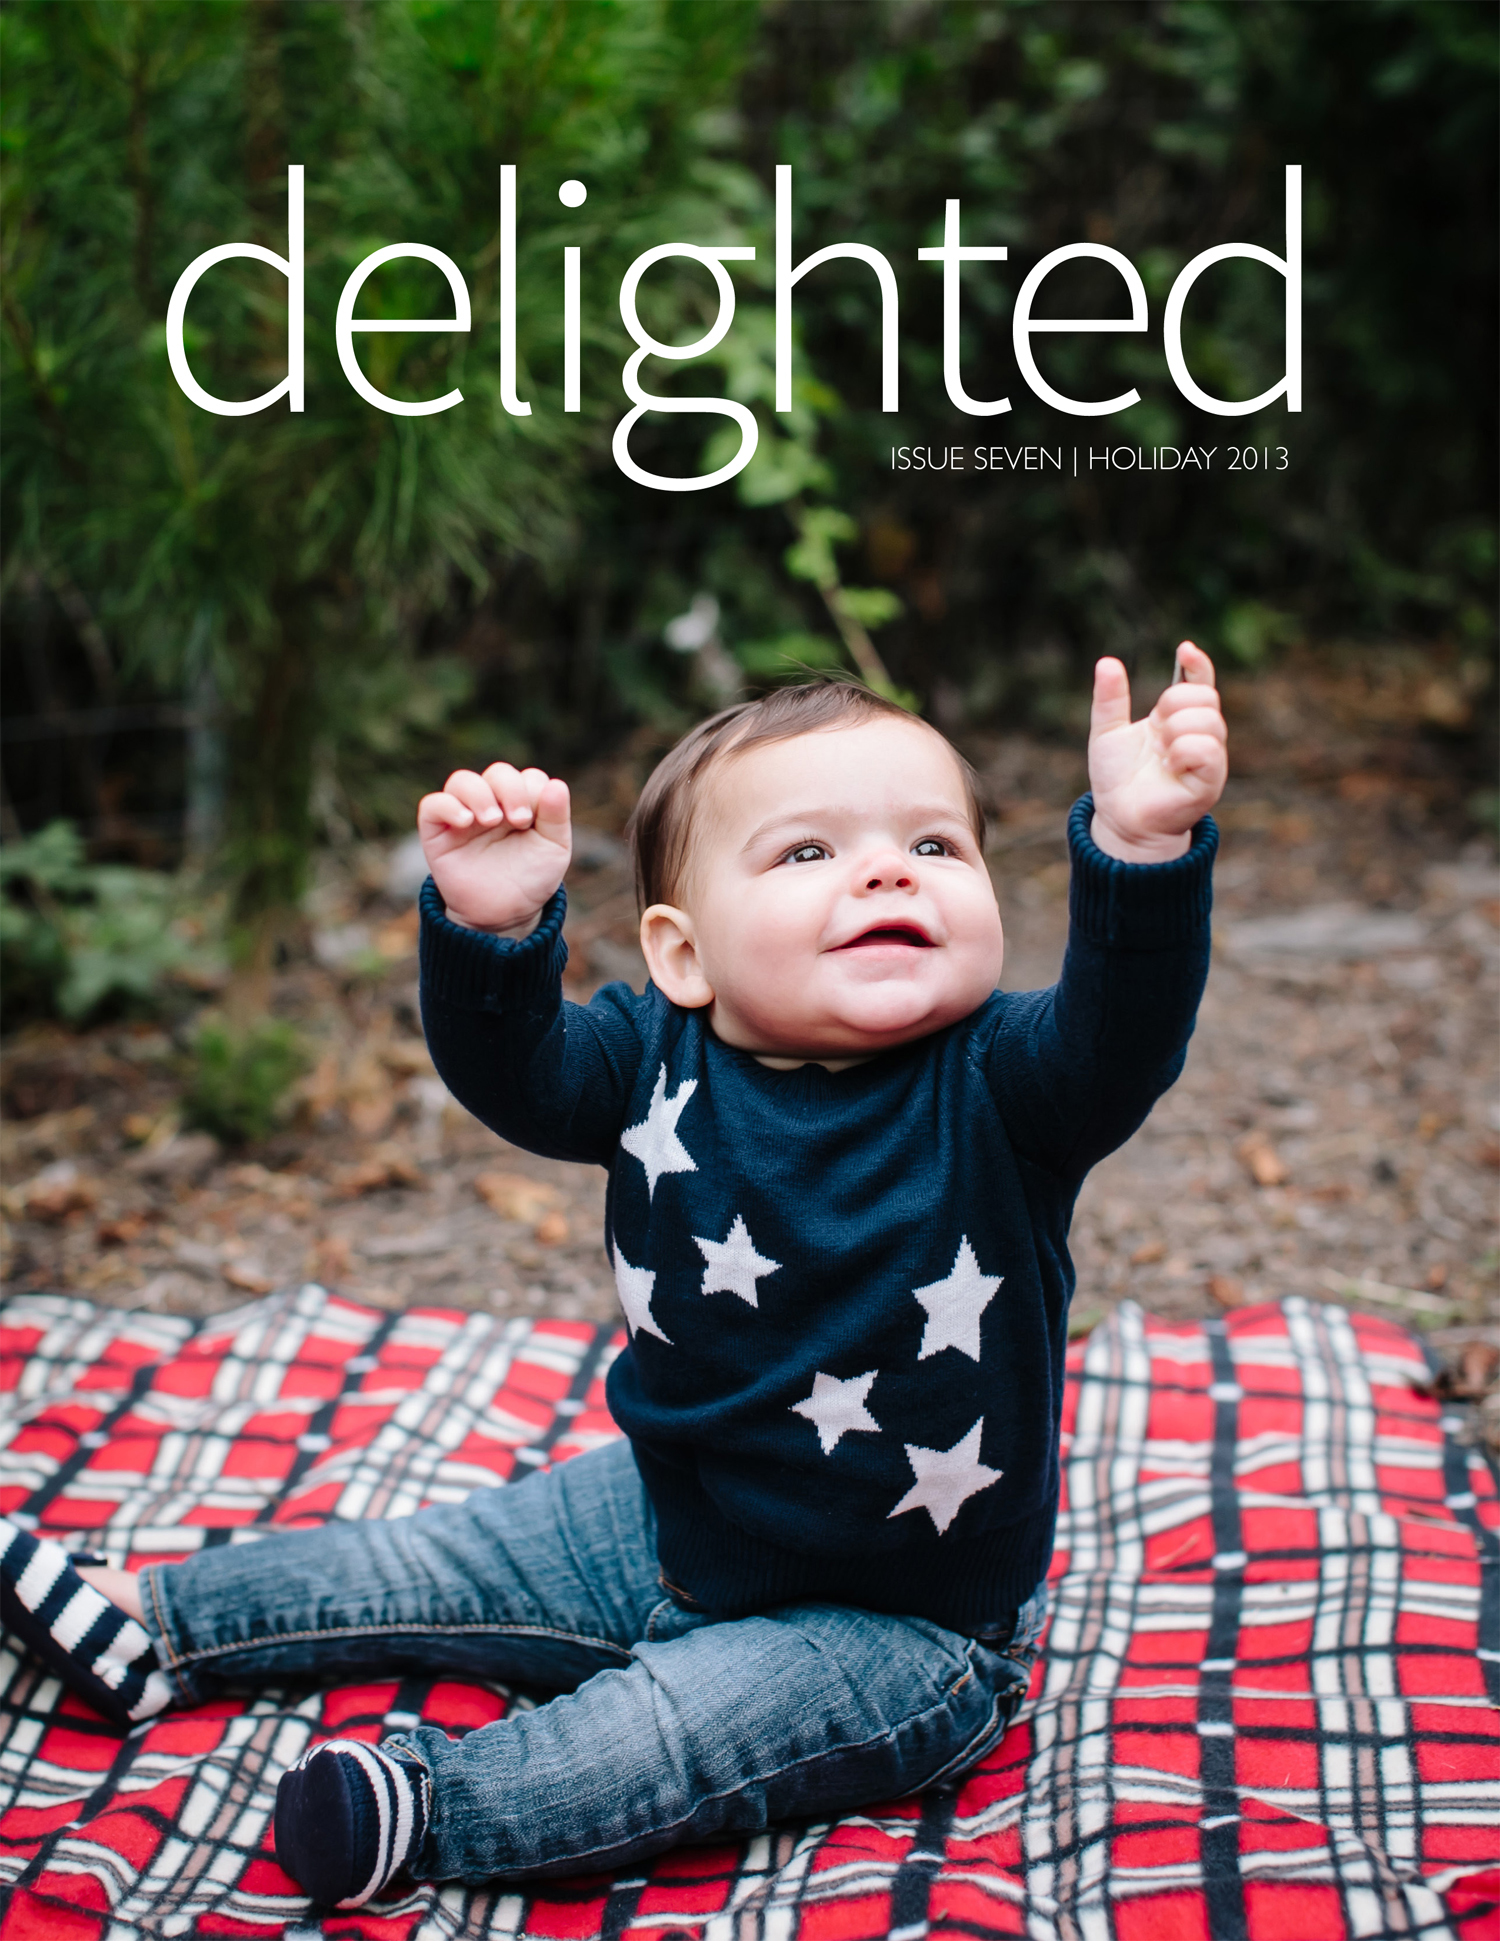 delighted_holiday2013cover2.jpg